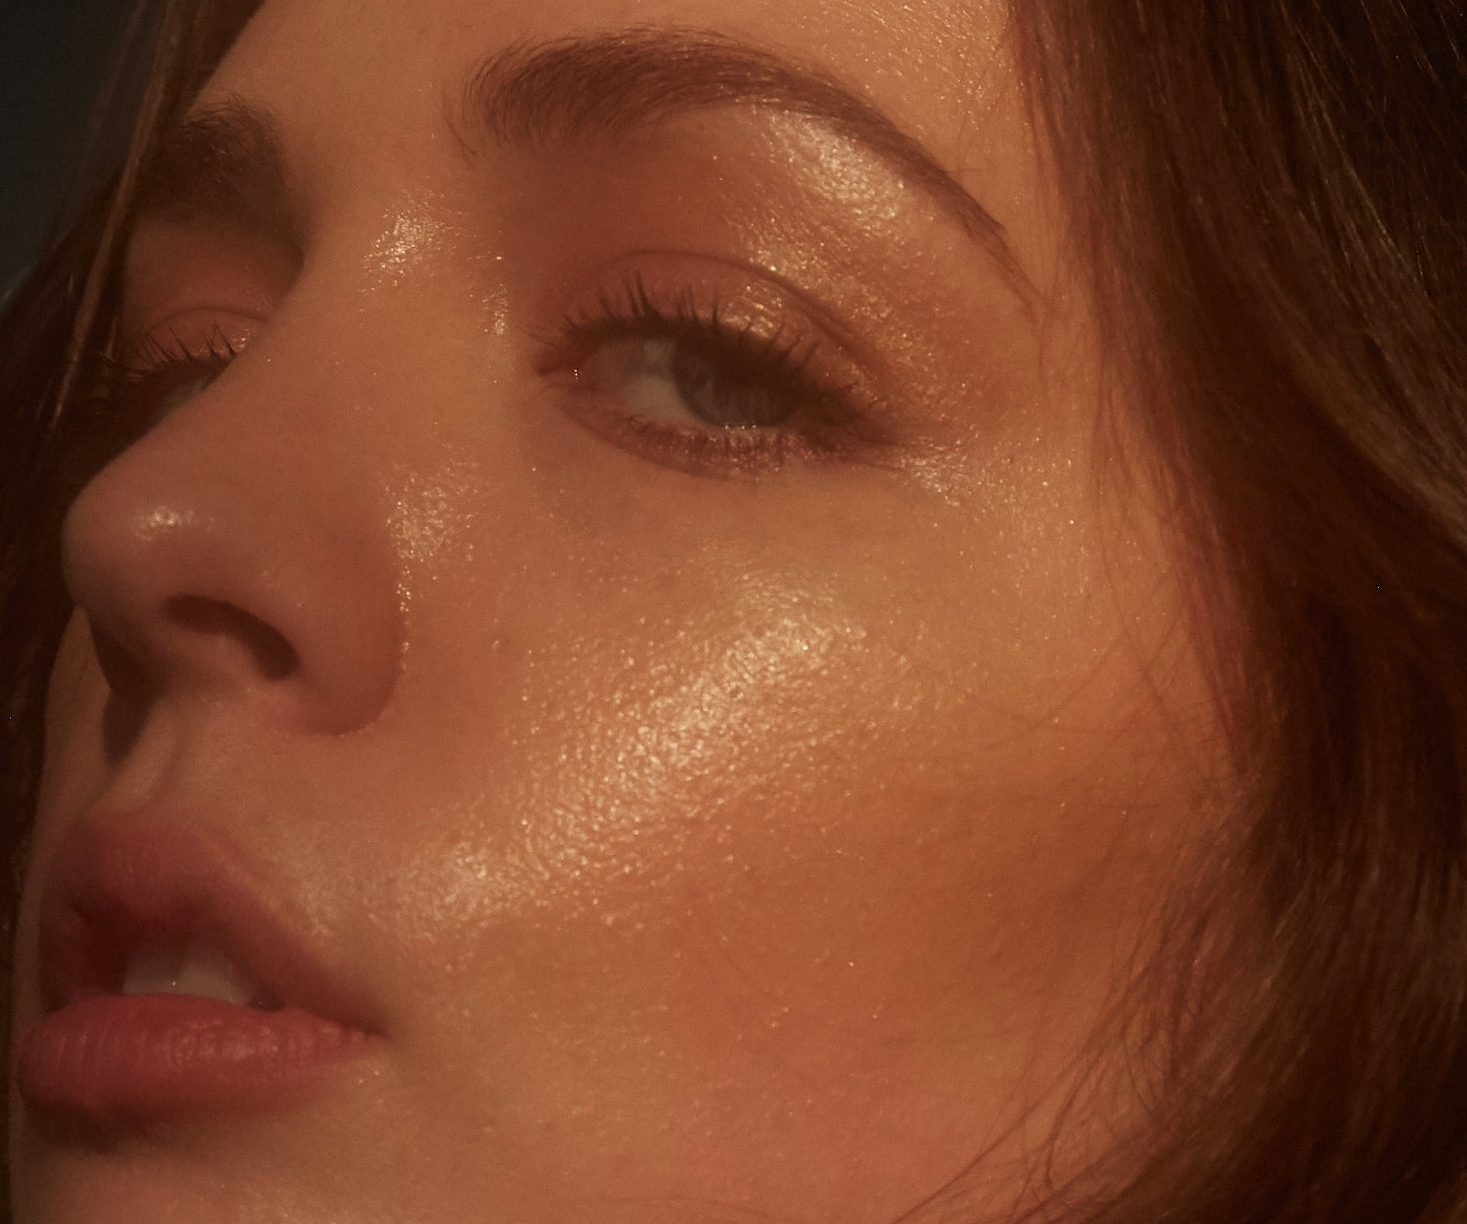 Glossier Lash slick Haloscope Skincare Caudalie youth to the people Coola RMS beauty Hum nutrition Estee Lauder St tropez Drunk elephant Rodial